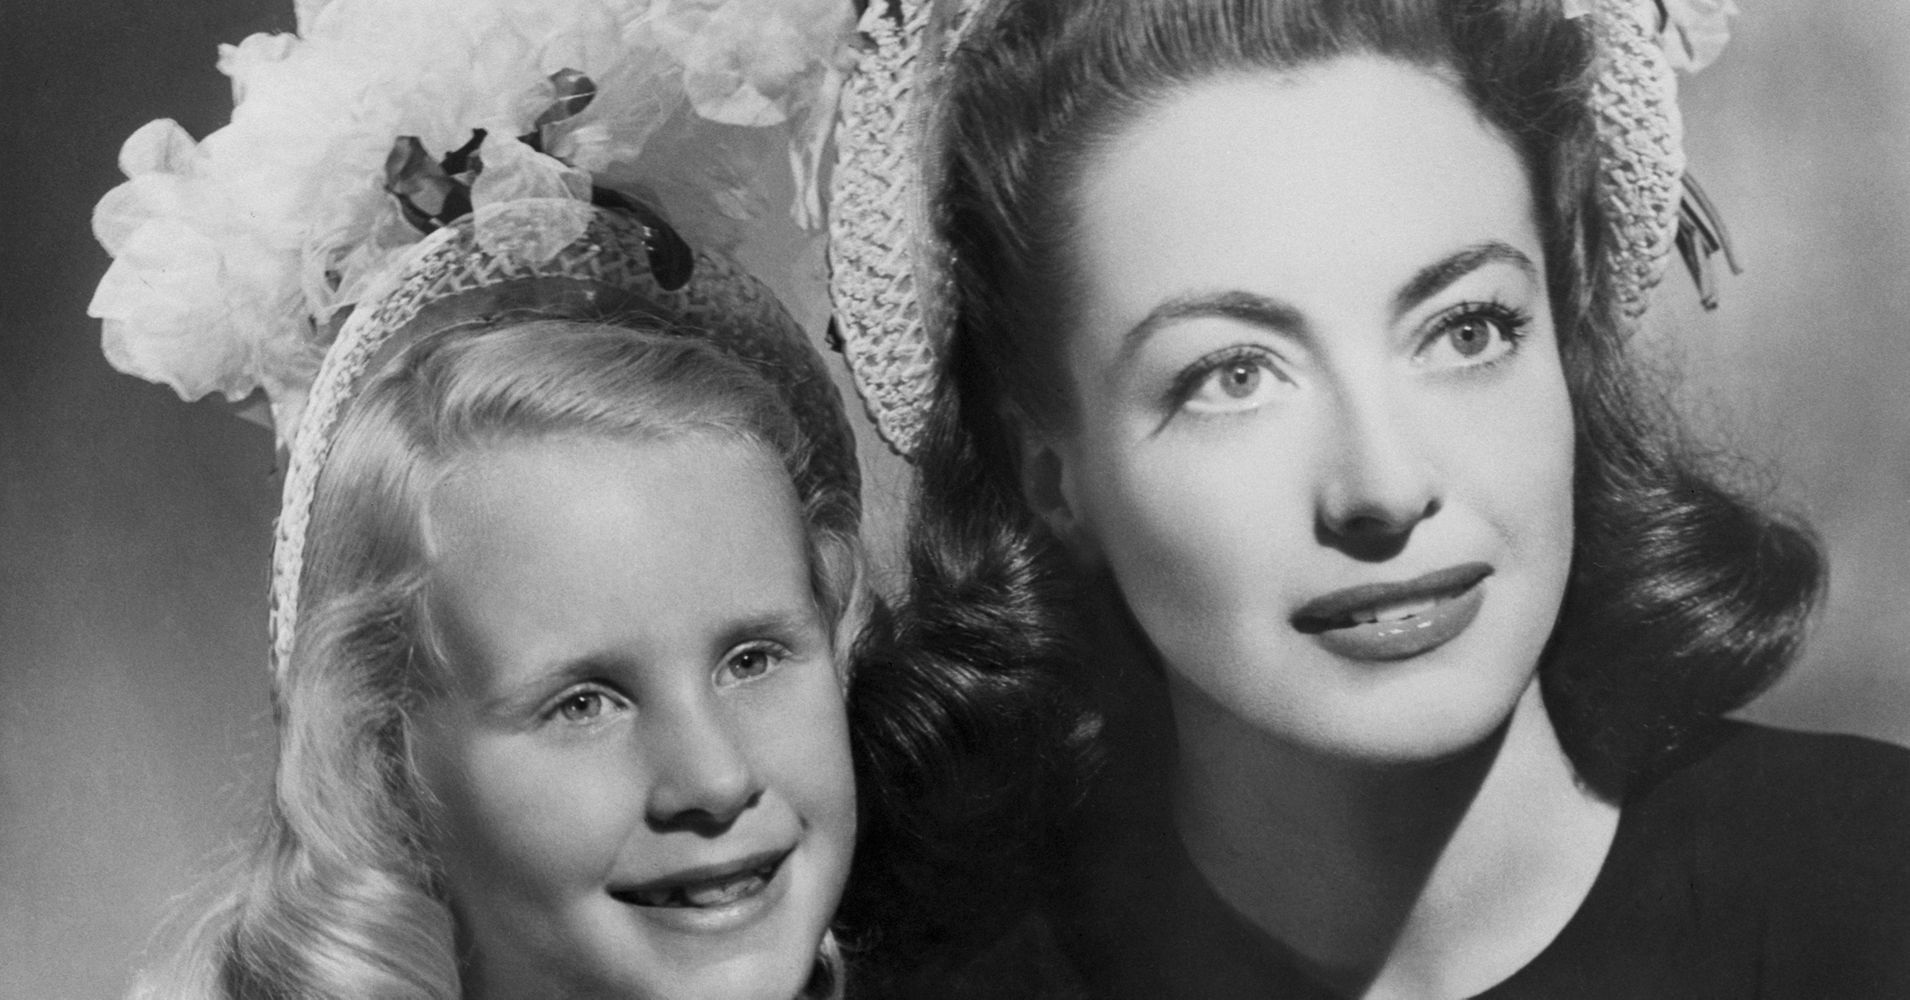 'Mommie Dearest' Author Christina Crawford Opens Up About Her Past and How She's Moving Forward